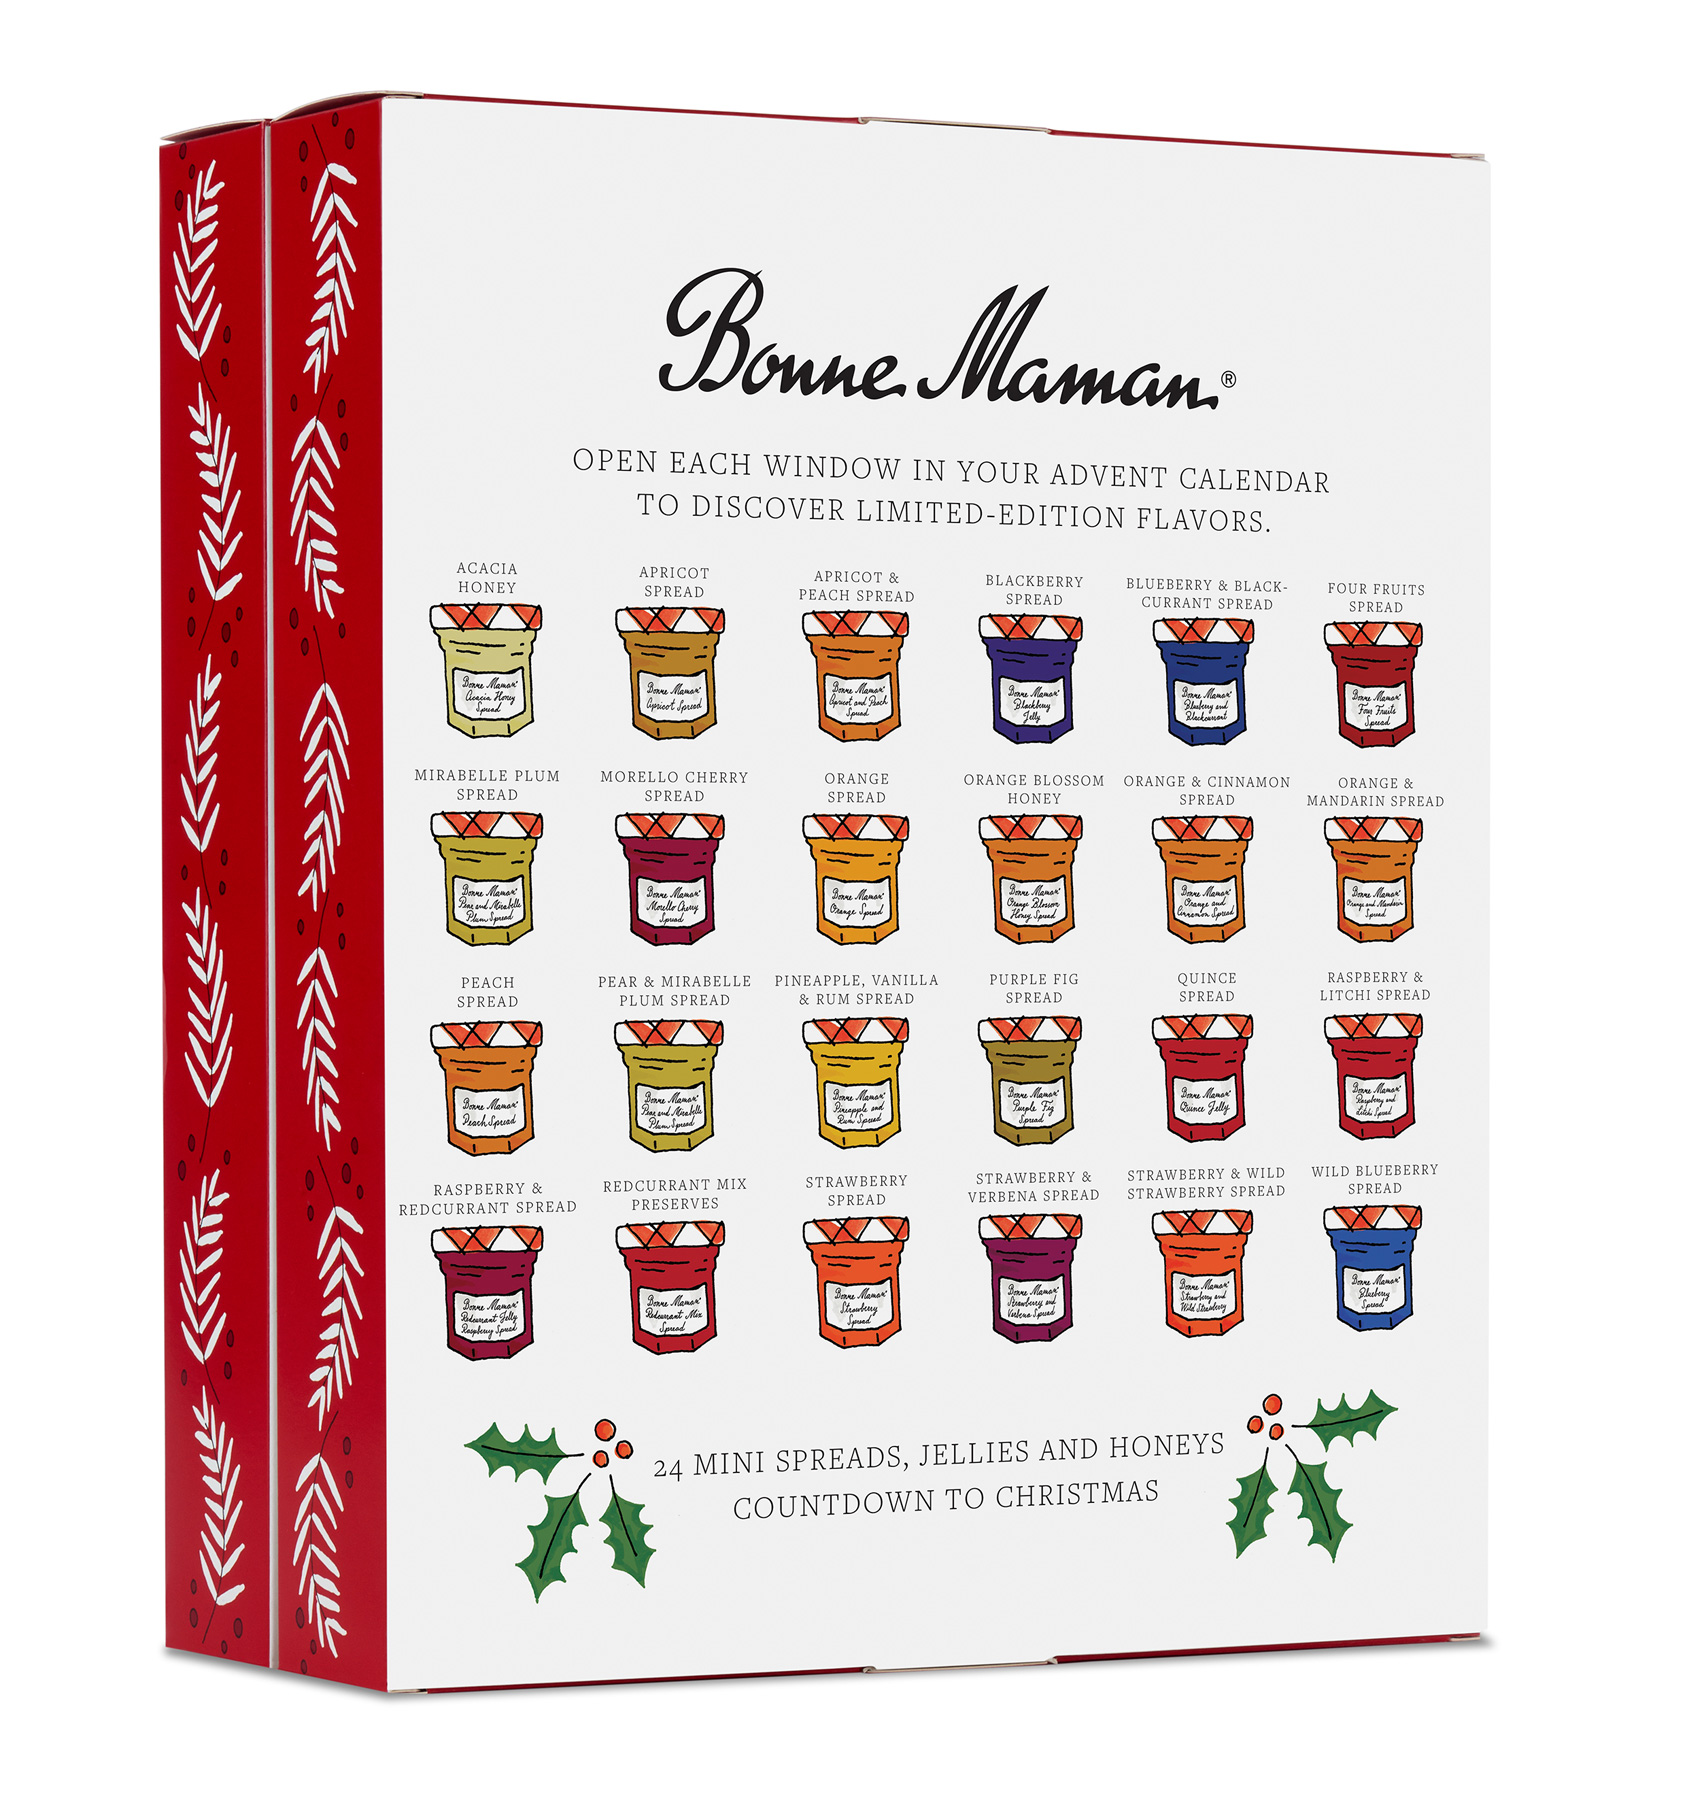 Back of box packaging for the Bonne Maman advent calendar shows all 24 mini jars of jellies, spreads and honey.